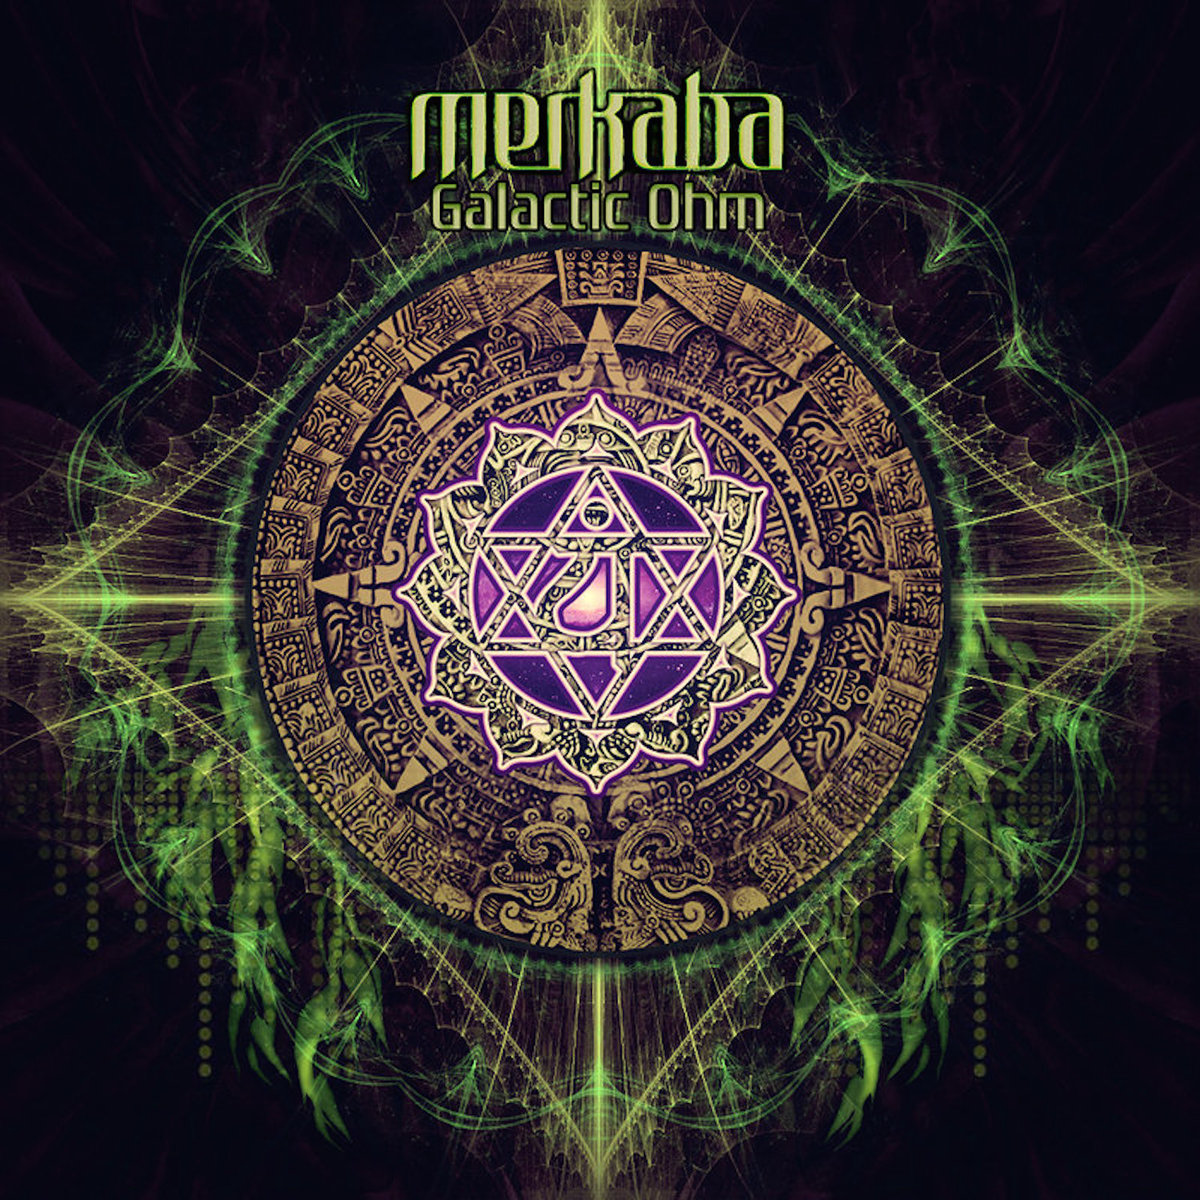 Merkaba - Galactic Ohm (artwork)